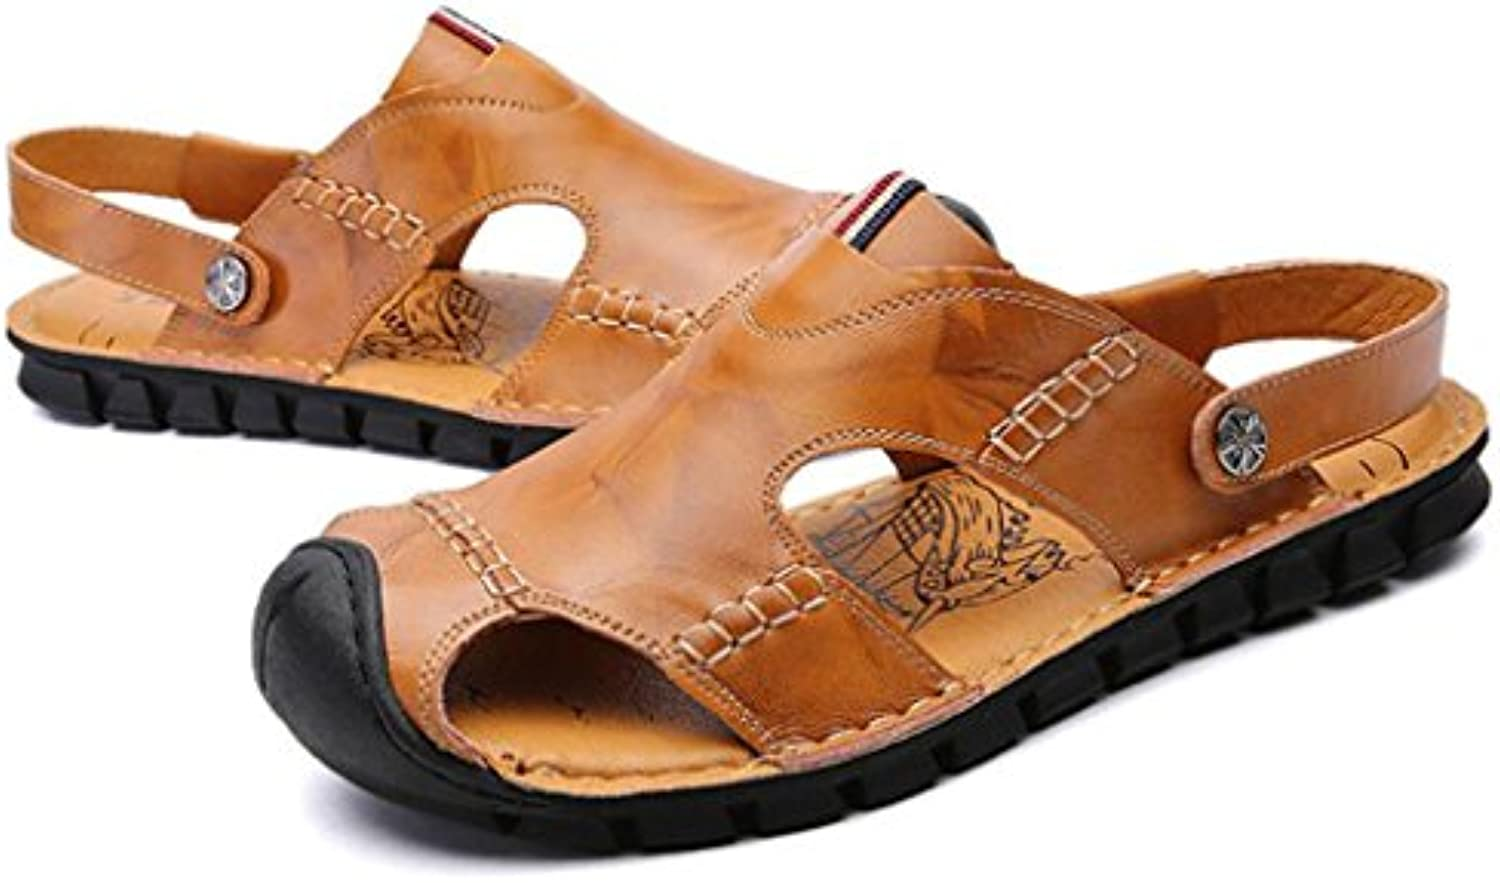 GAOLIXIA Herren Leder Breathable Sandalen Sommer Hohl Hausschuhe Komfortable Outdoor Casual Schuhe Mode Durable